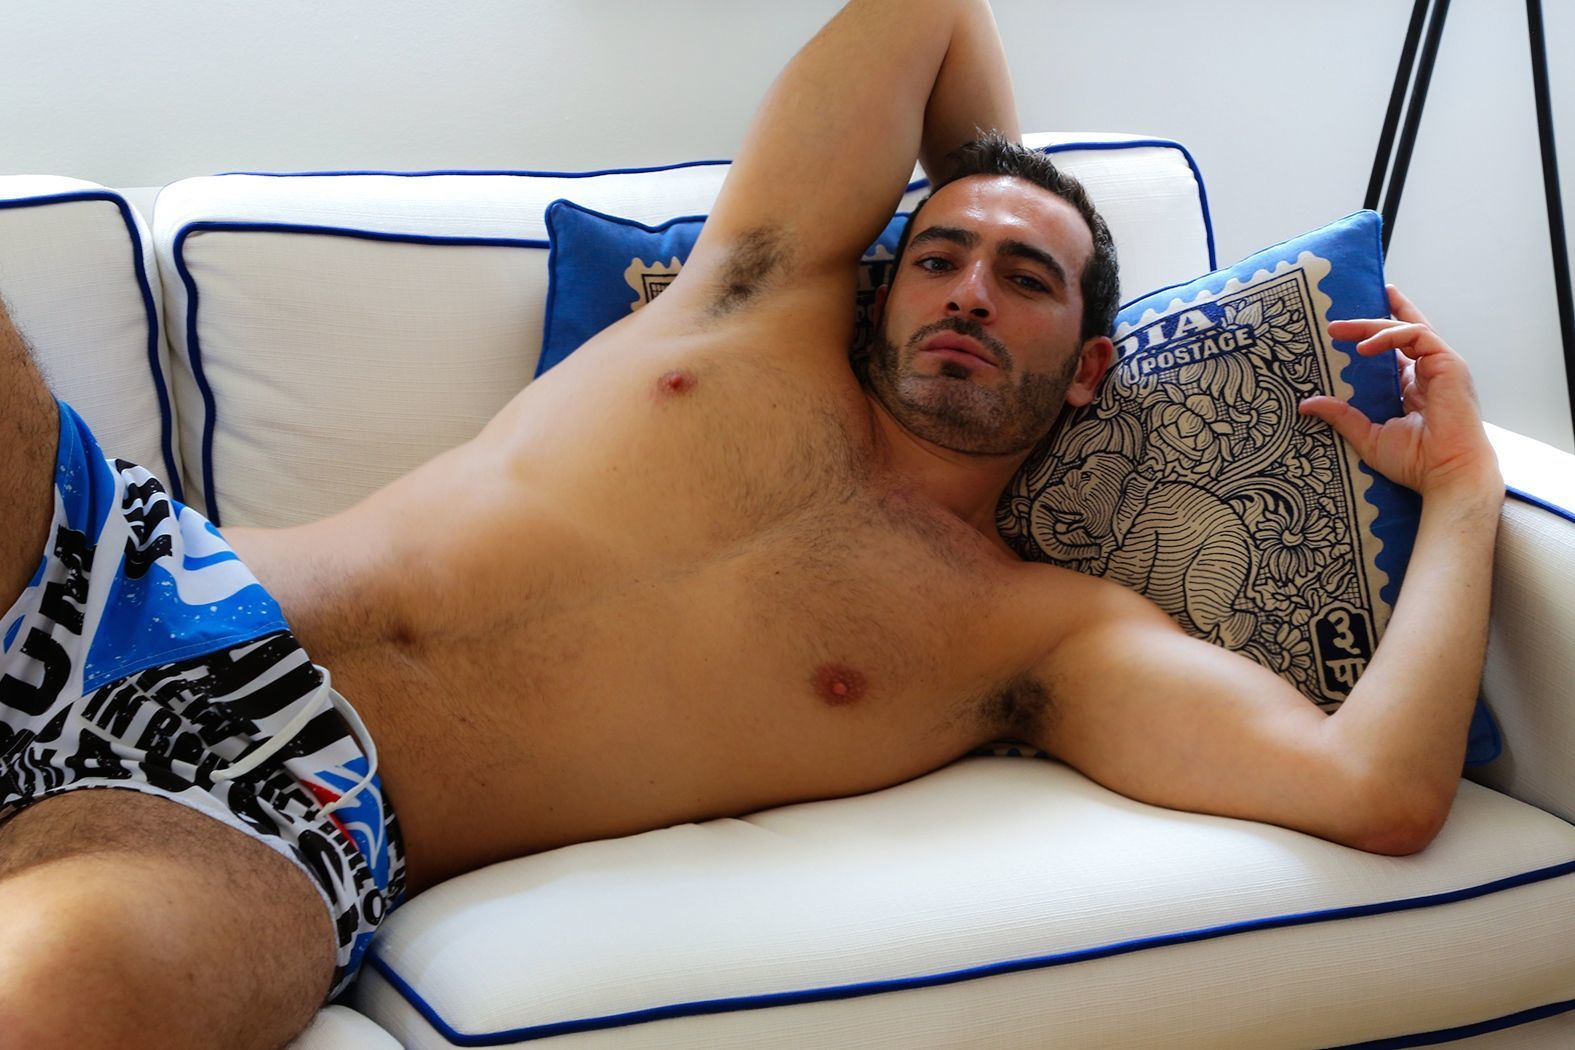 gay francais video escort nord